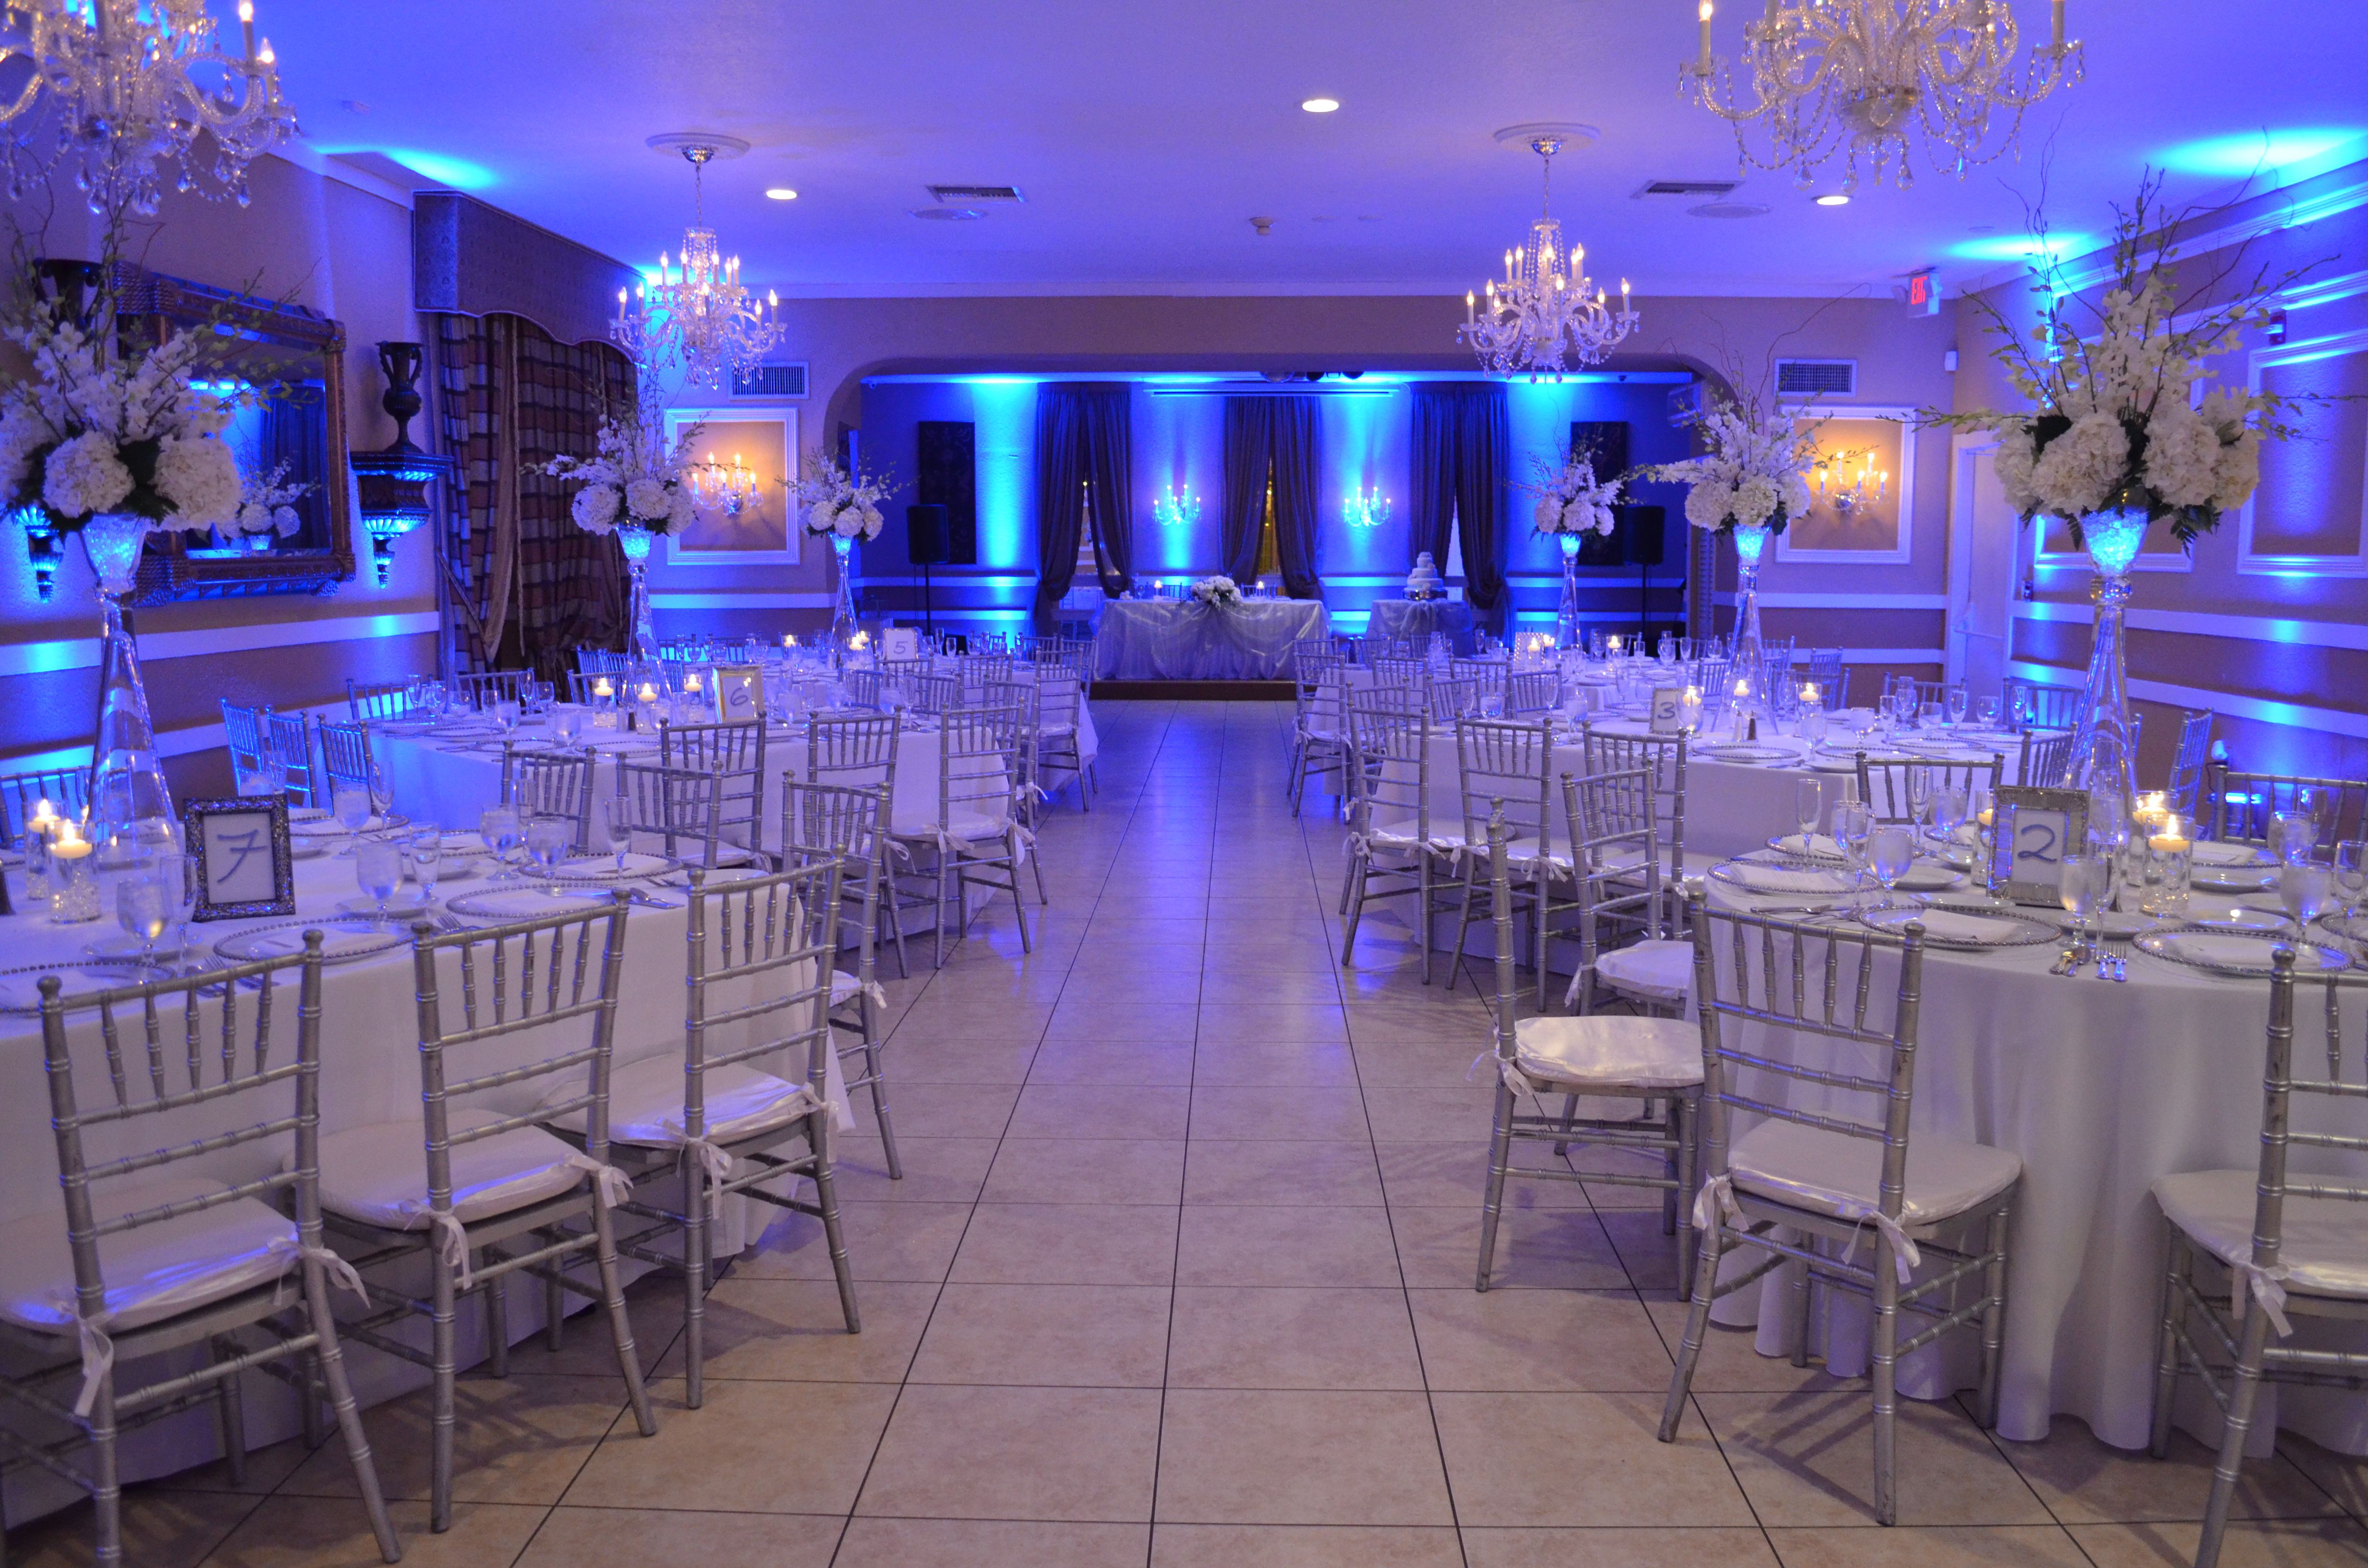 Wedding reception silver chiavari chairs and blue uplighting table